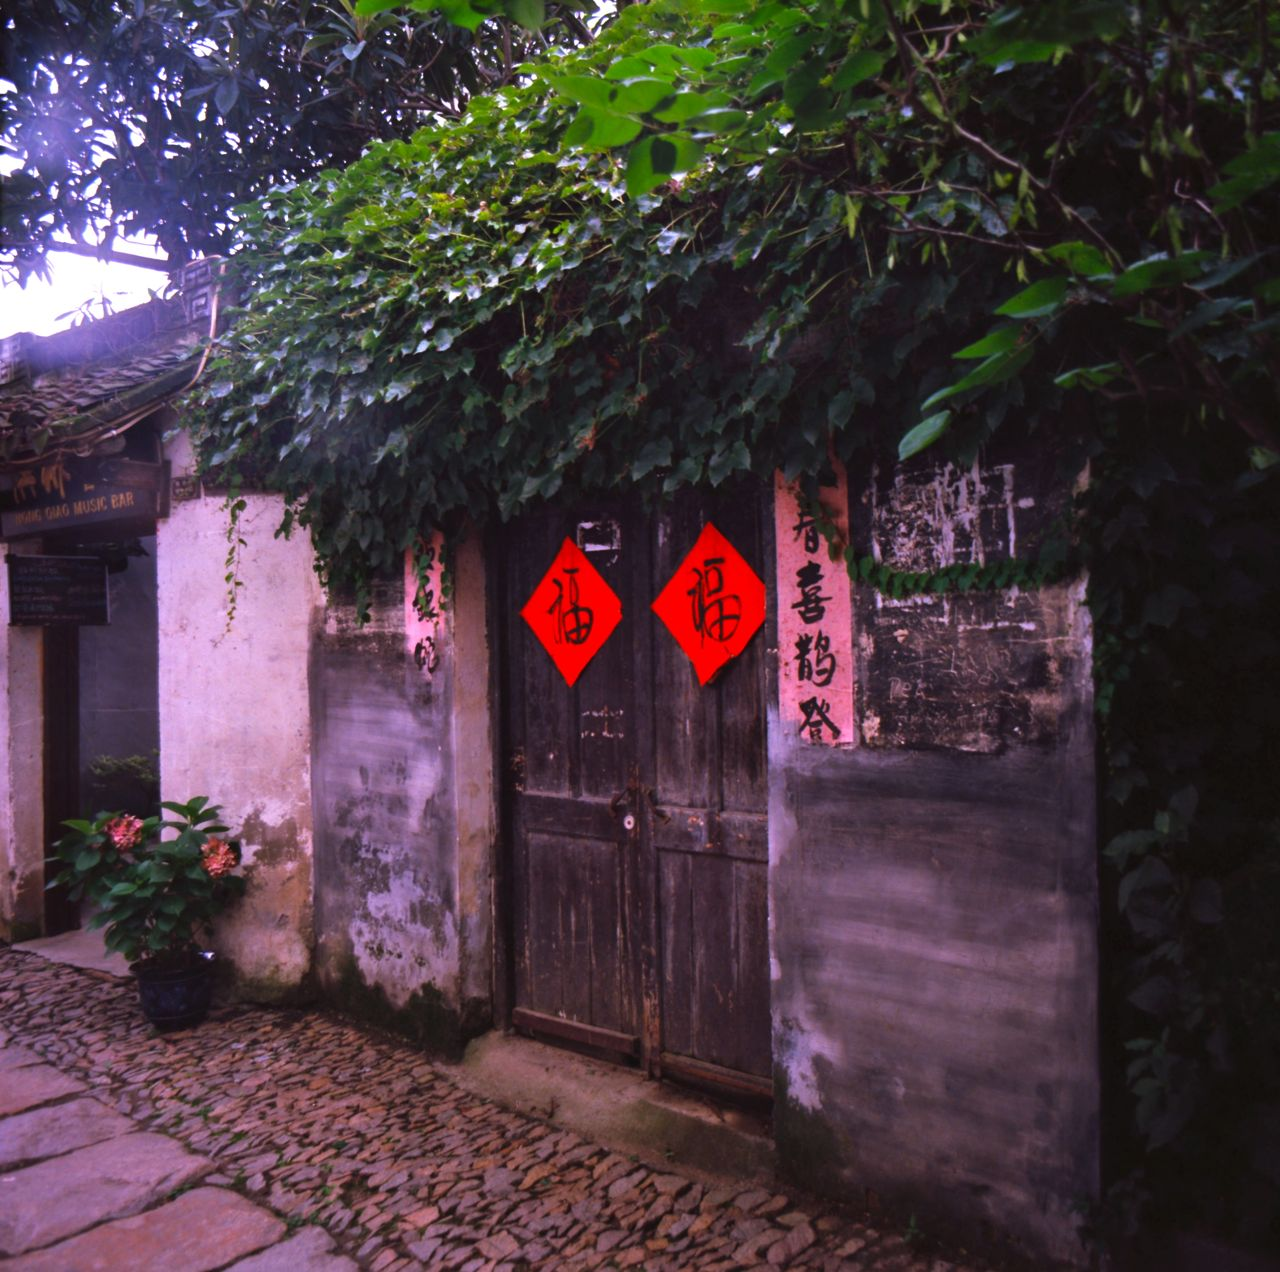 用直 / Luzhi, China, July 2014